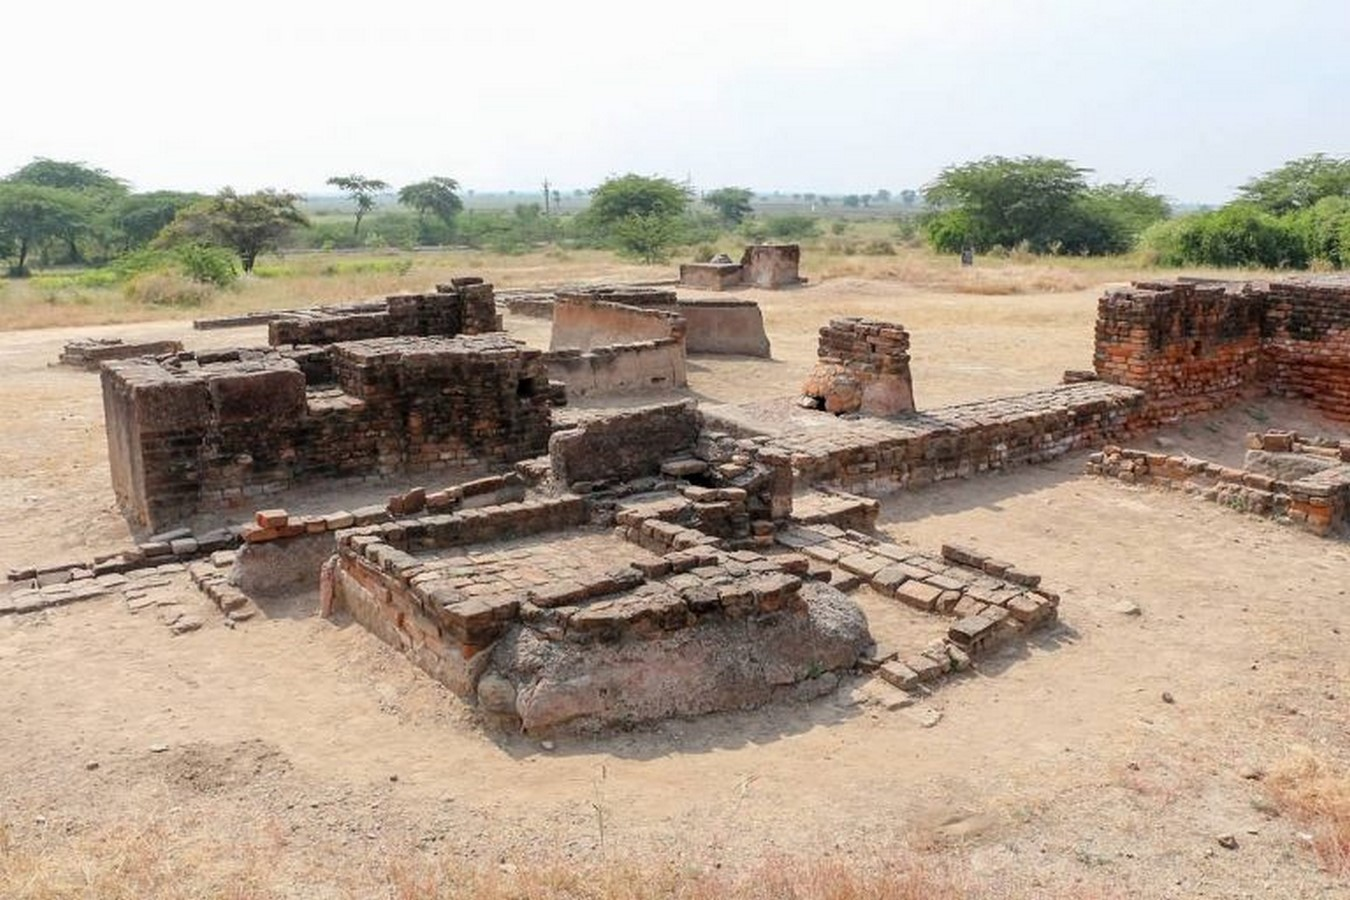 How can the visibility of Archaelogical sites be improved - Sheet8